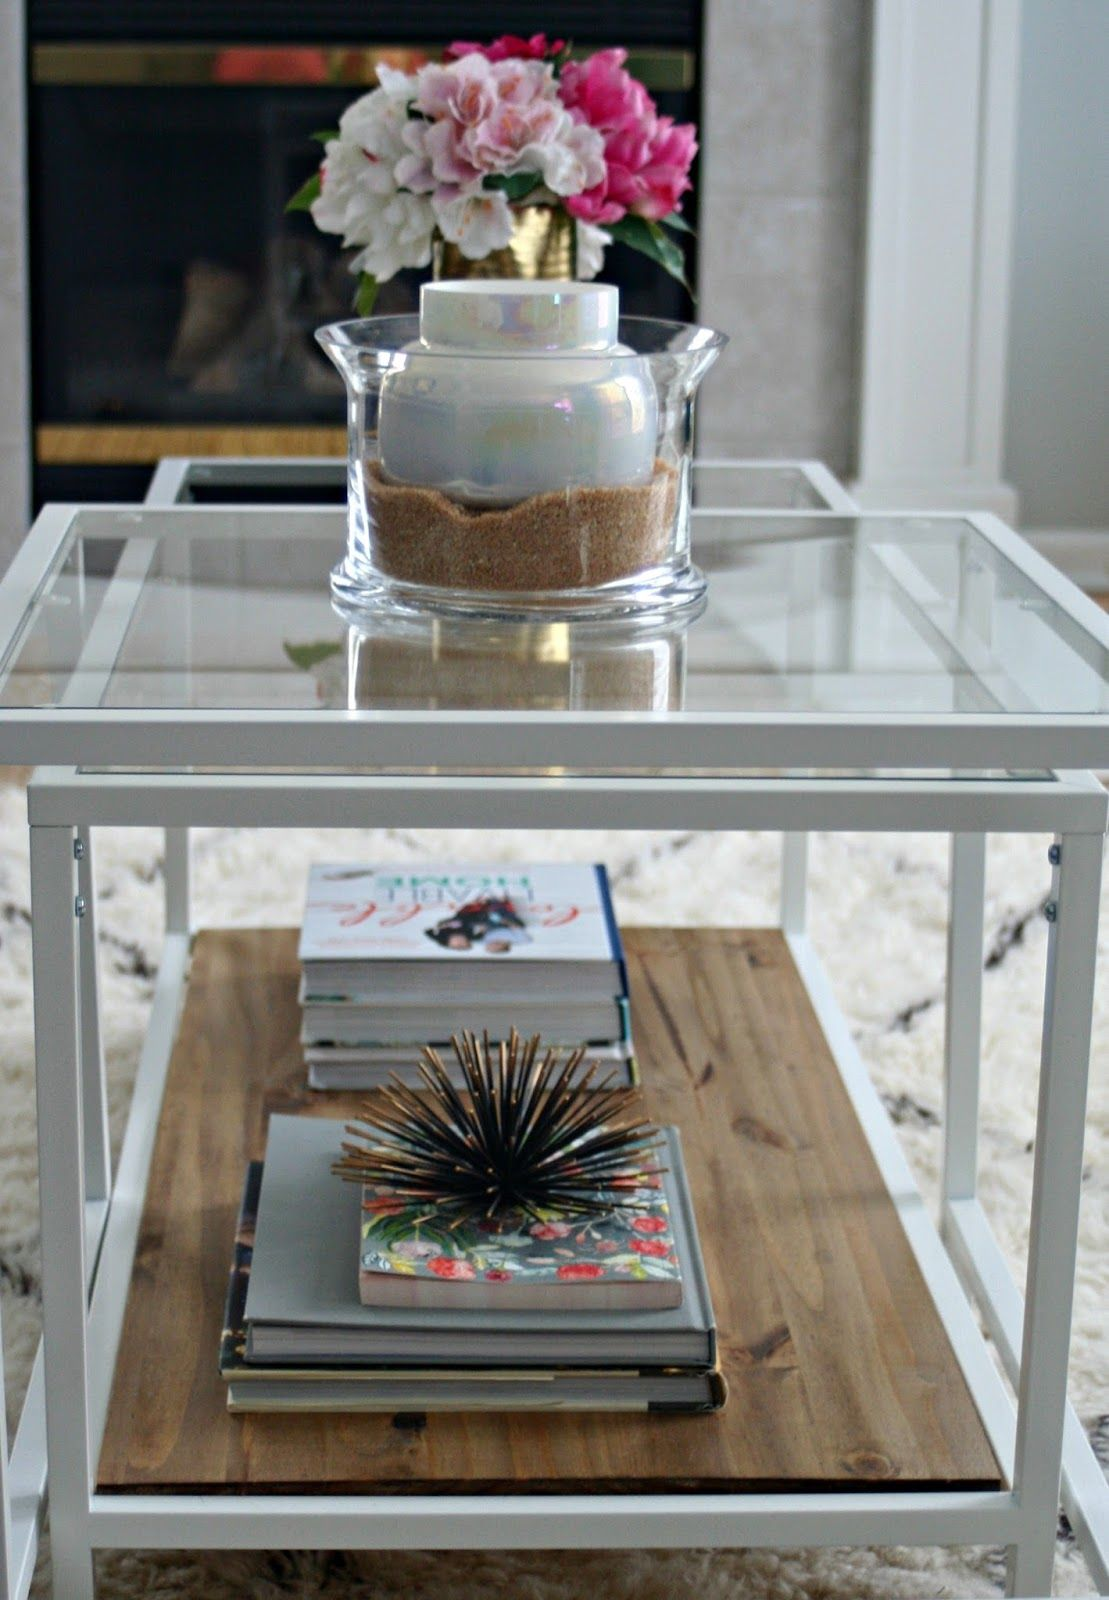 Ikea Couchtisch Mit Glas Ikea Vittsjo Hack With Stained Wood Perfect For Farmhouse Decor | Ikea Couchtisch, Couchtisch, Couchtisch Diy